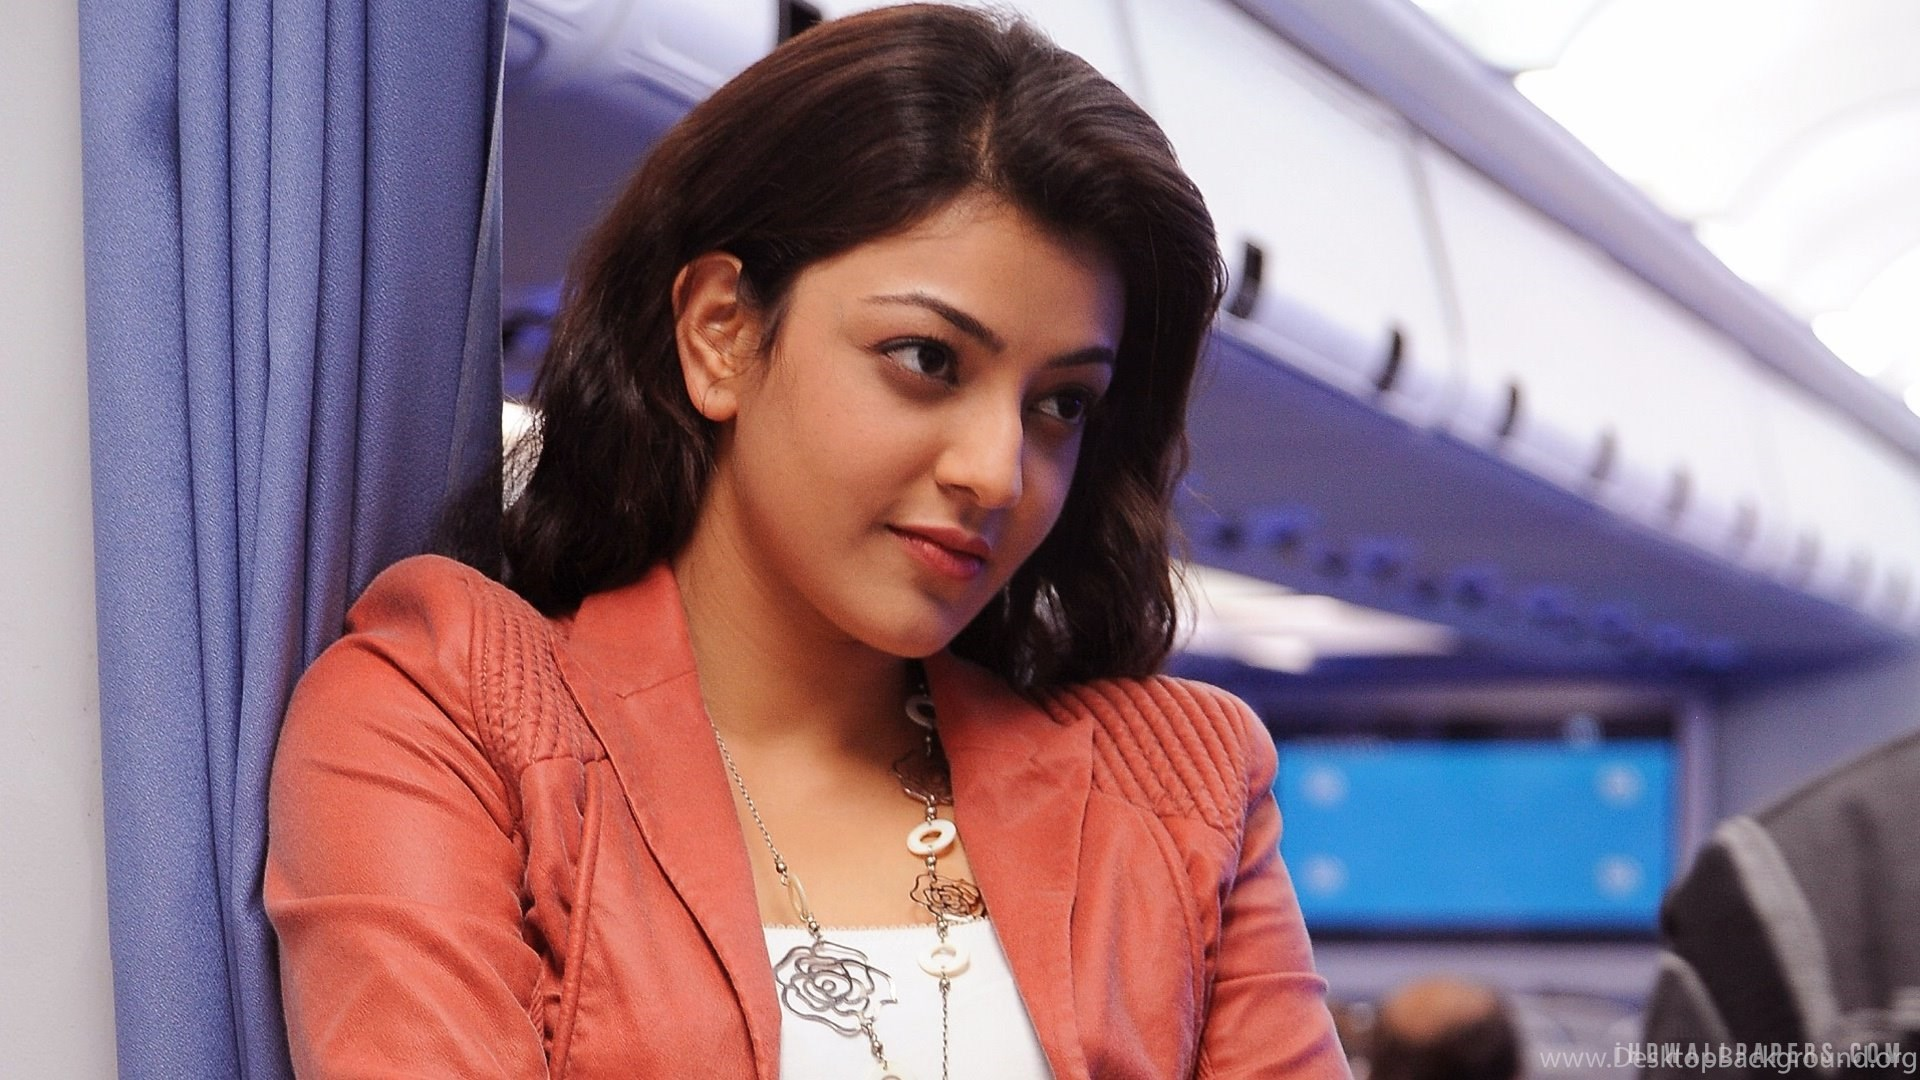 kajal agarwal hd wallpapers wallpapers